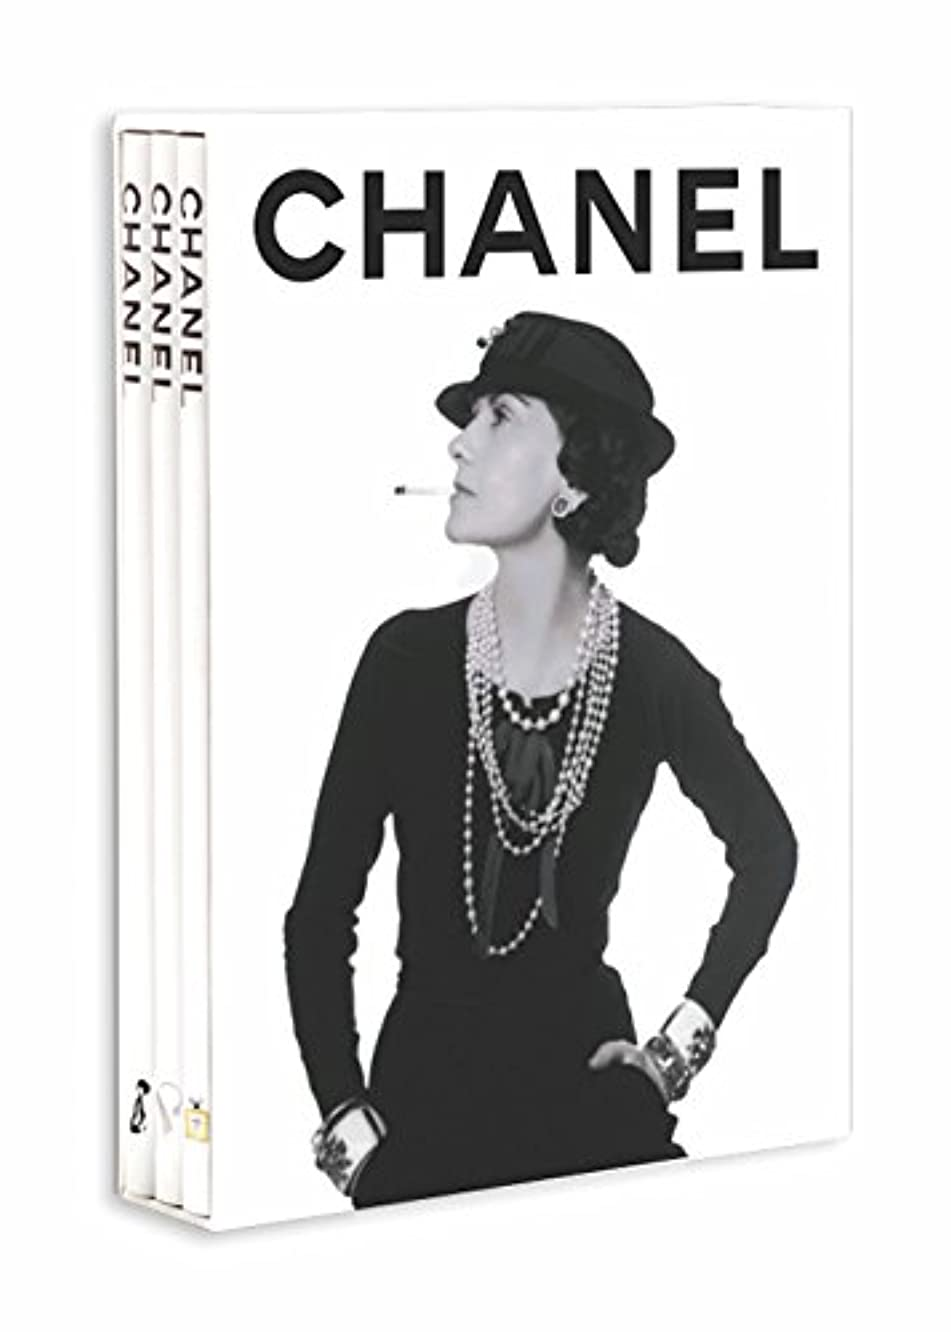 Chanel: Fashion/ Fine Jewellery/ Perfume (Set of 3 Books) (Memoire)